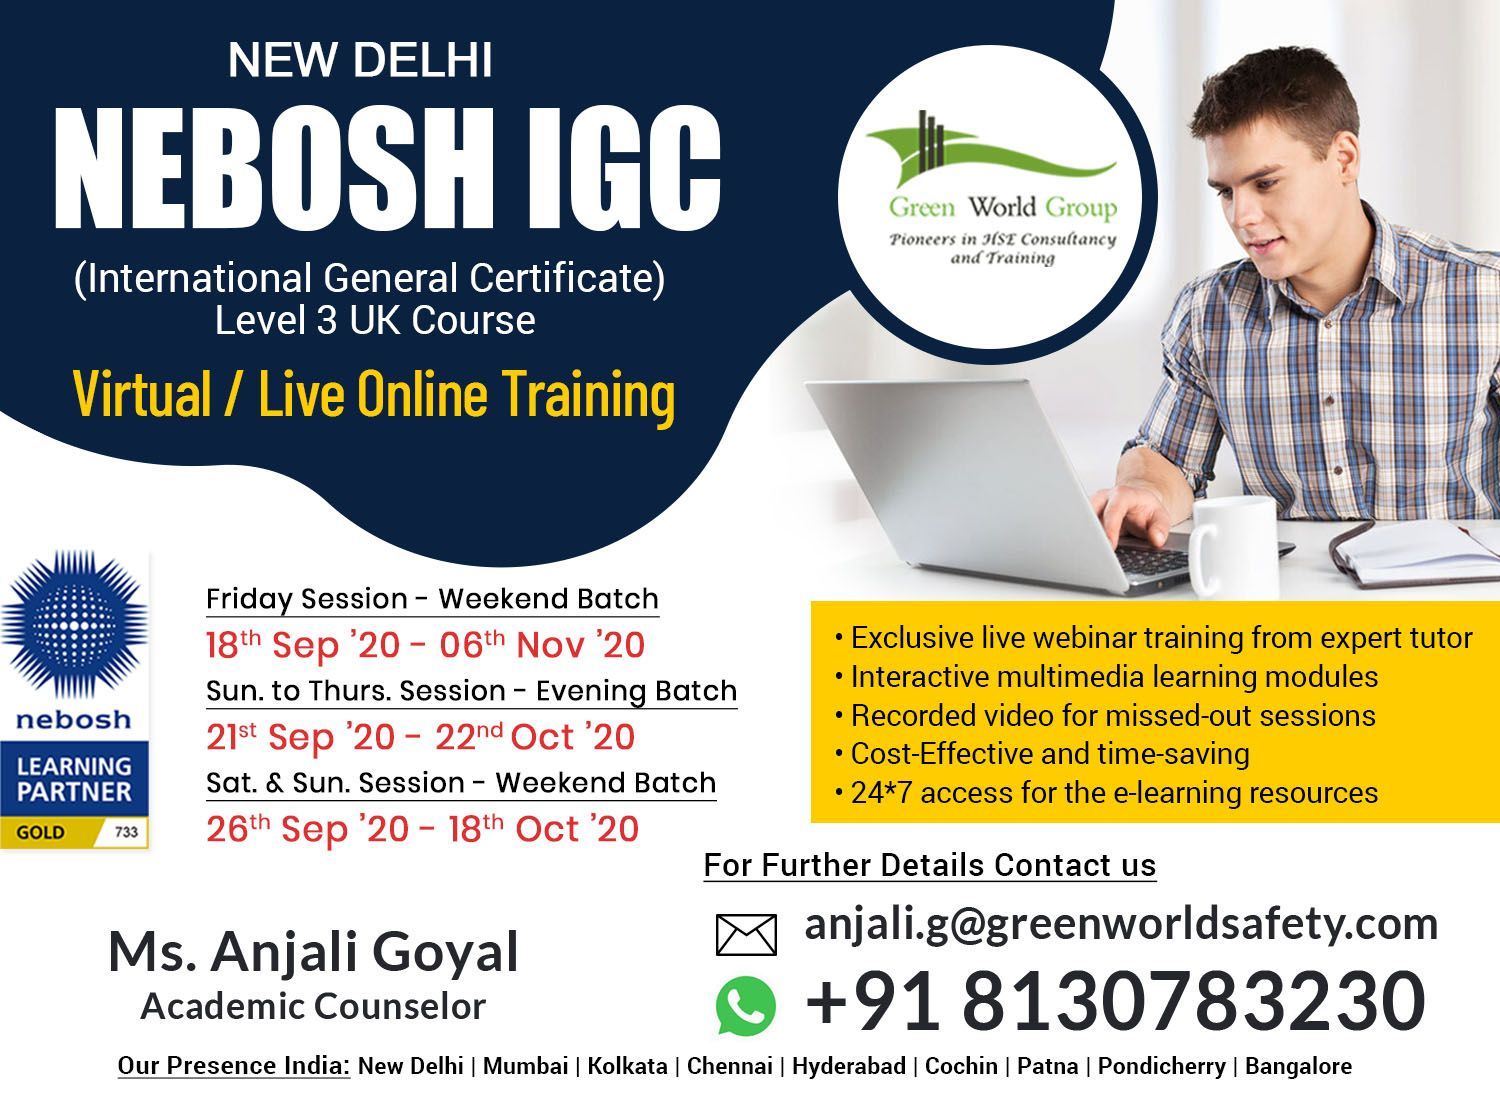 Attractive Offer for Safety Course in New Delhi in 2020